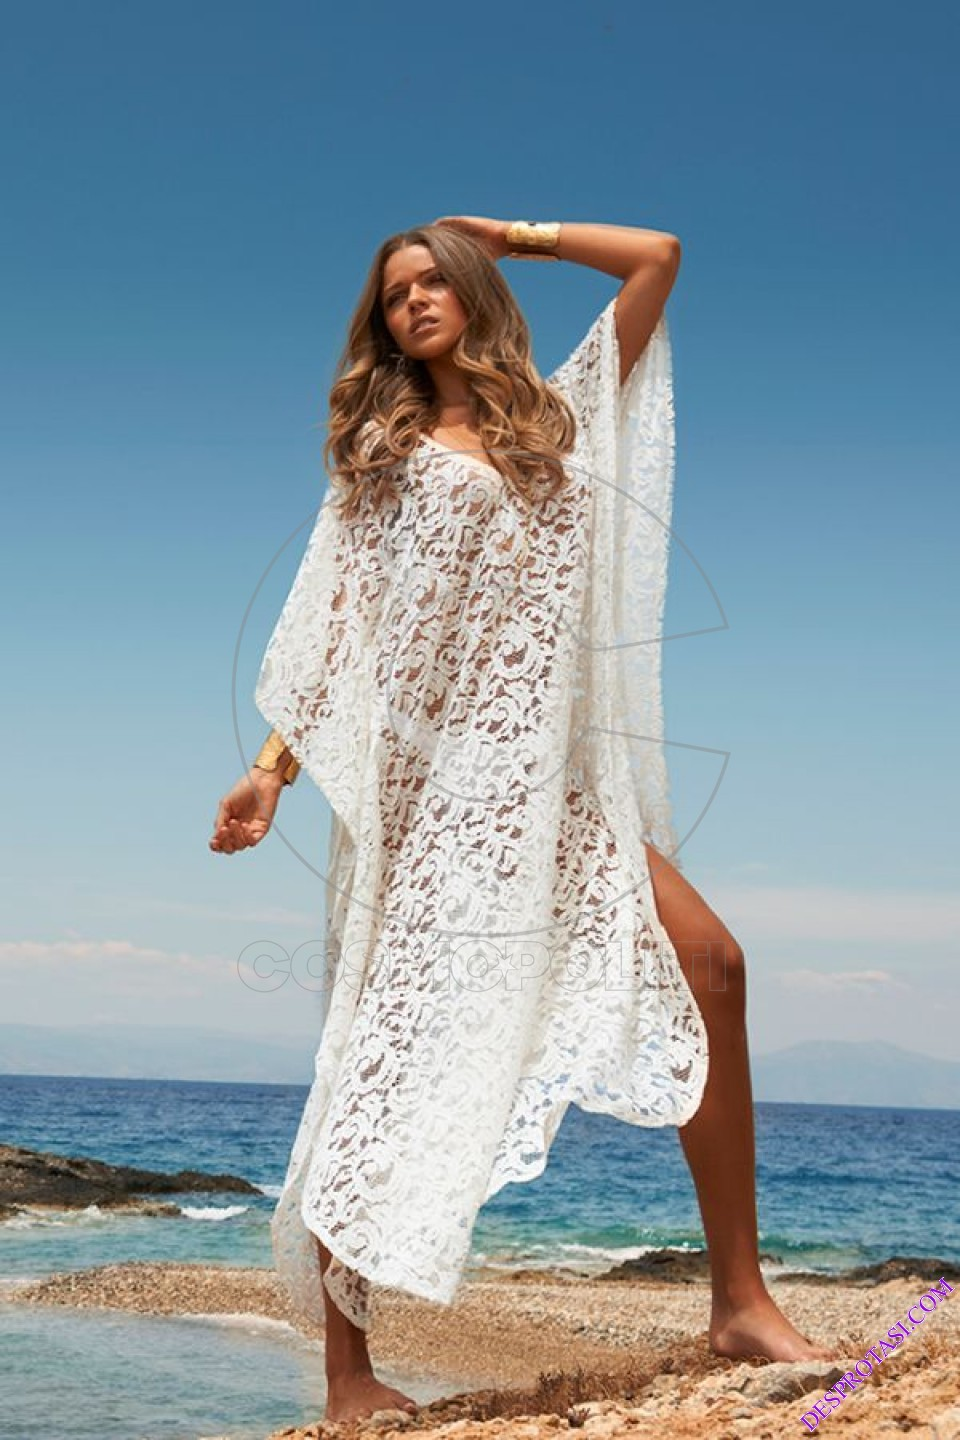 32114-21_desprotasi.com_cover_up_paralias_summer_2015_1